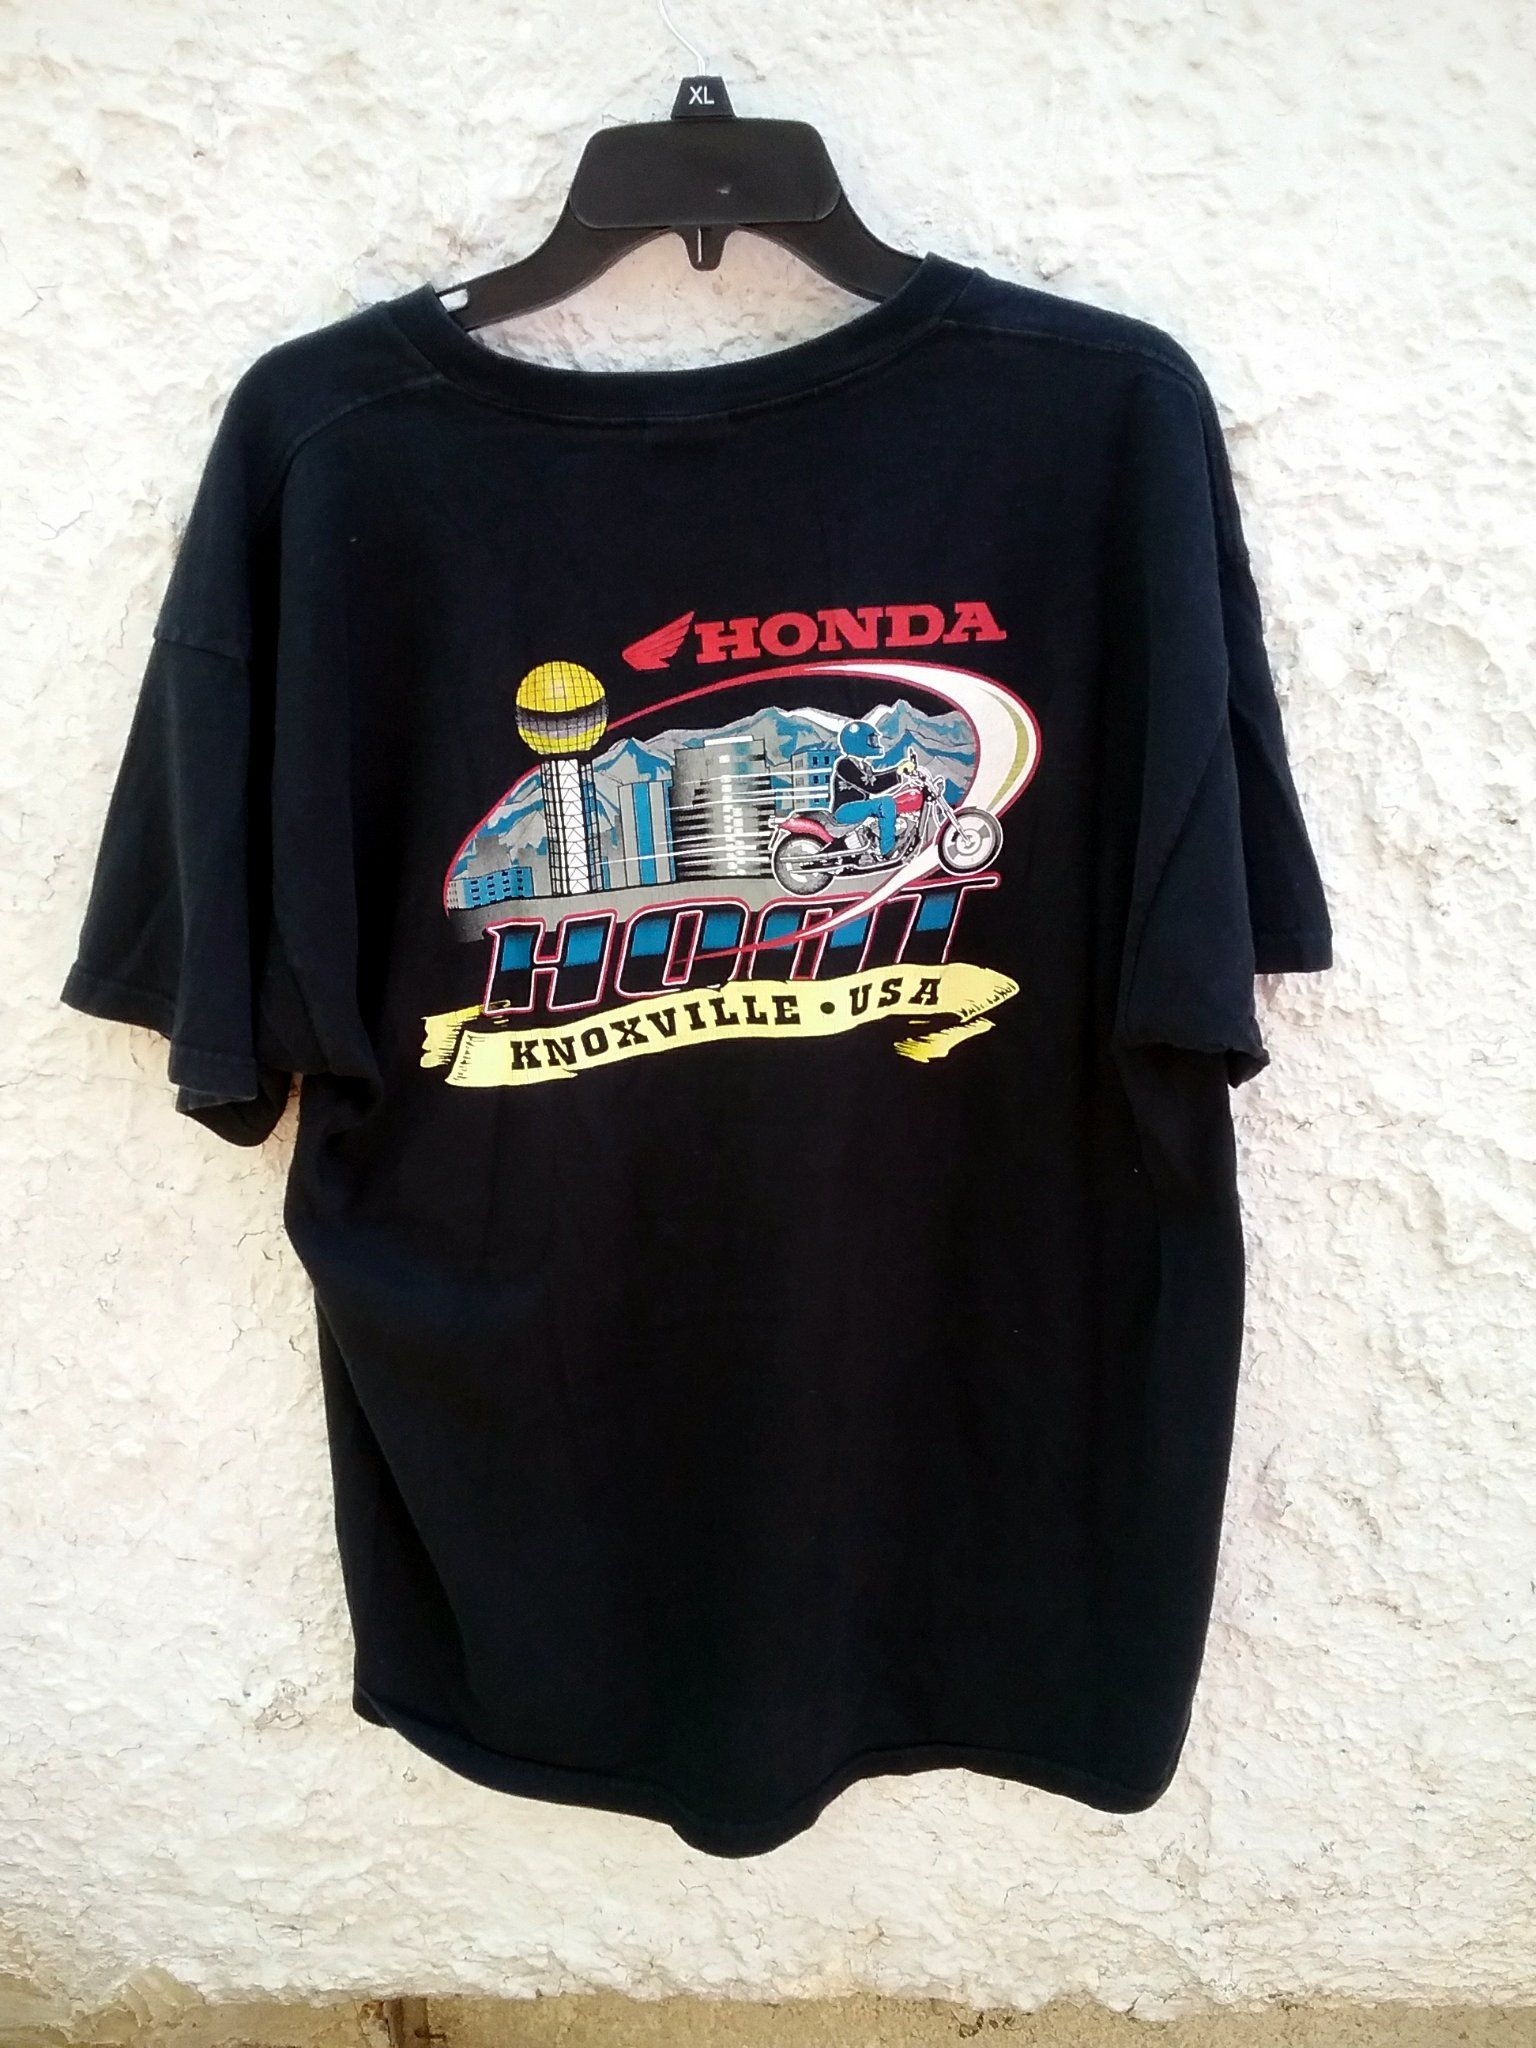 90s Honda Knoxville Usa Motorcycle T Shirt Xl Vintage By